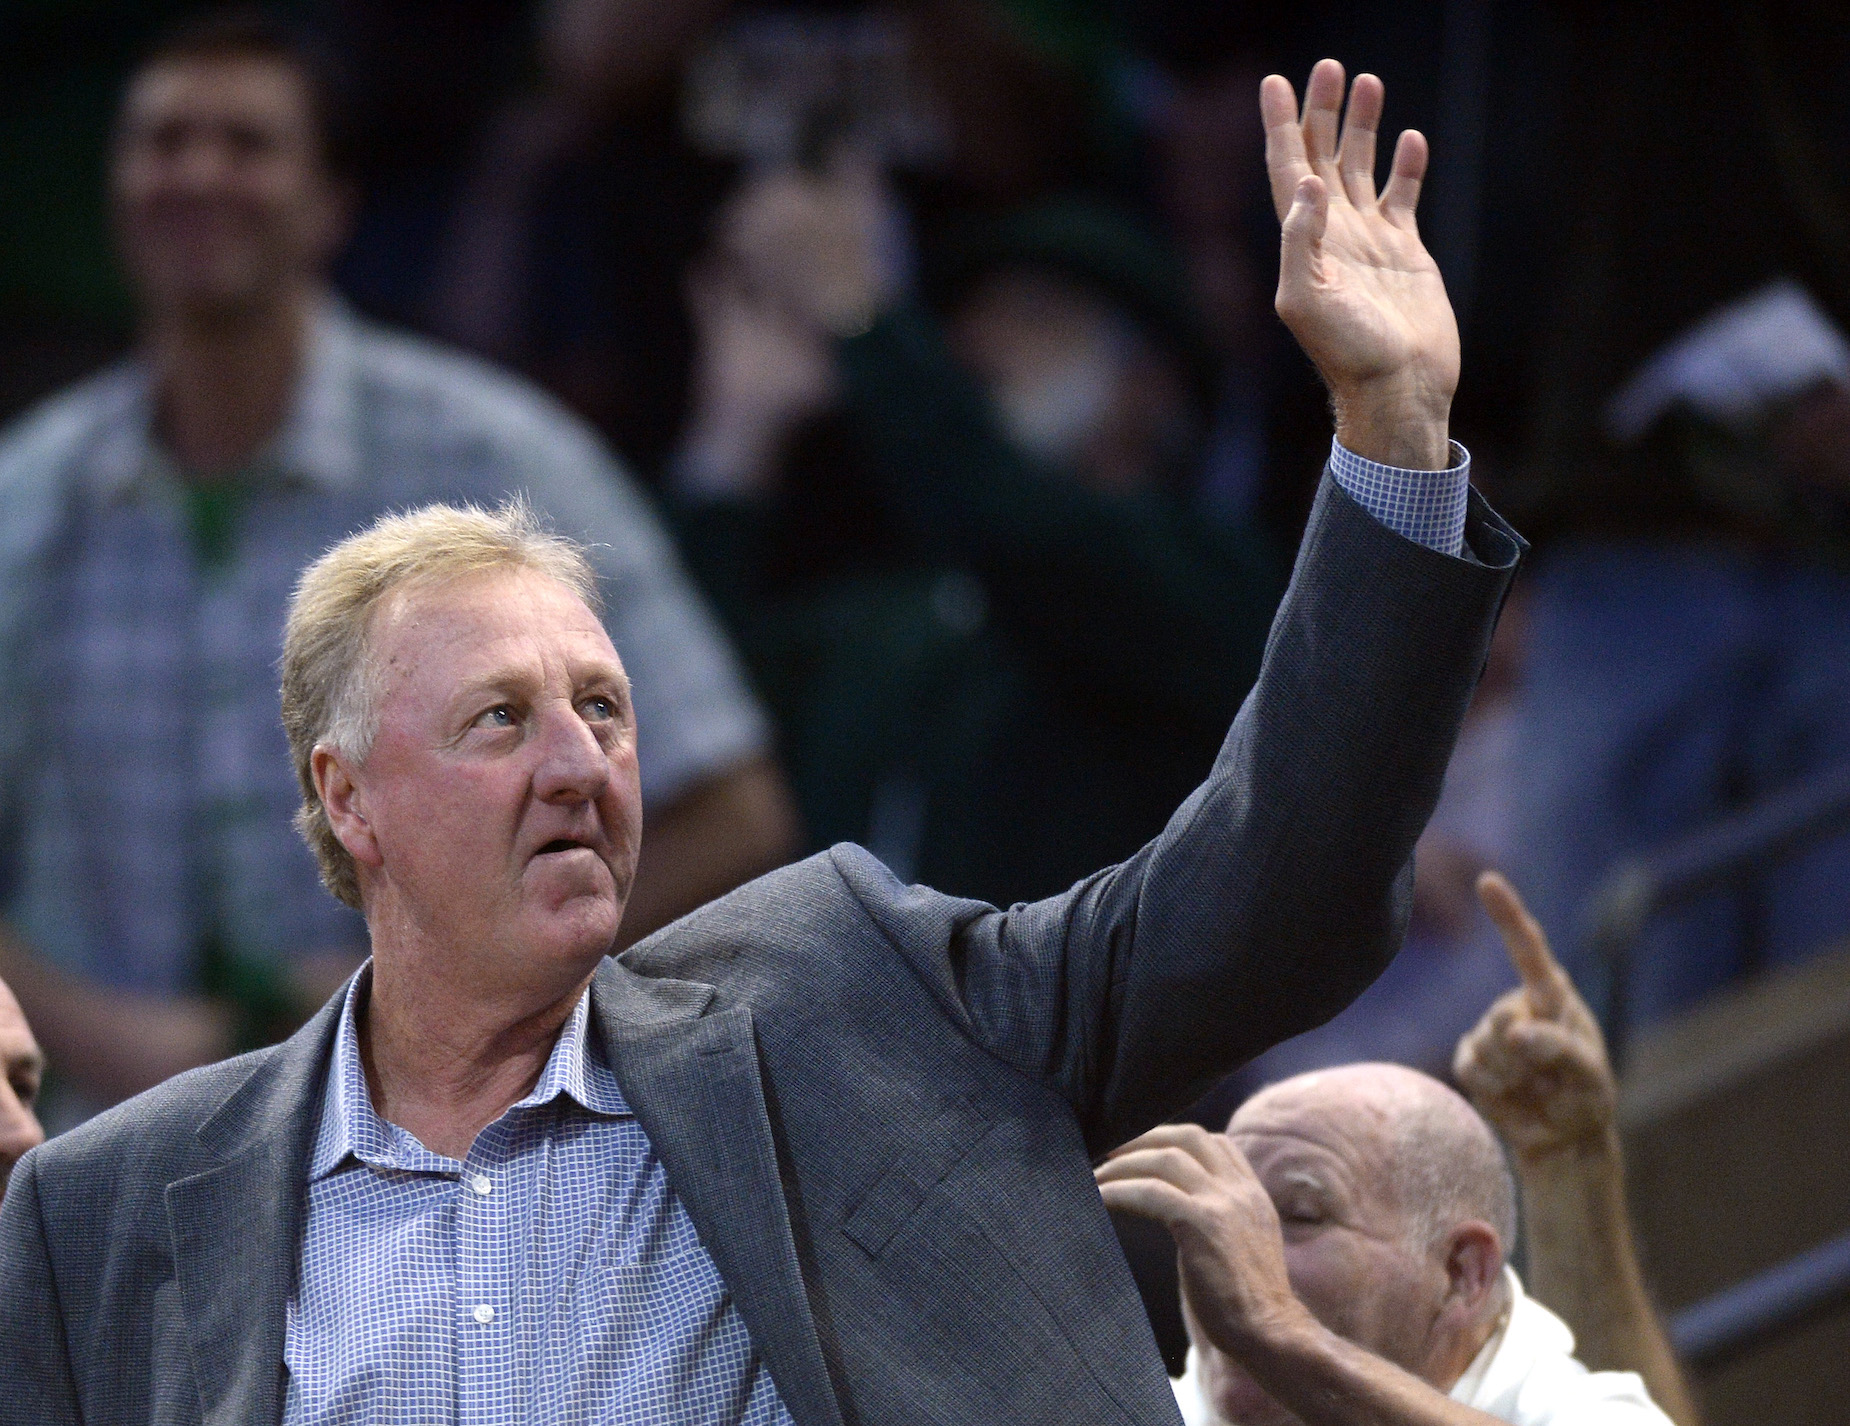 Boston Celtics legend Larry Bird was actually a pretty nice guy according to his peers.